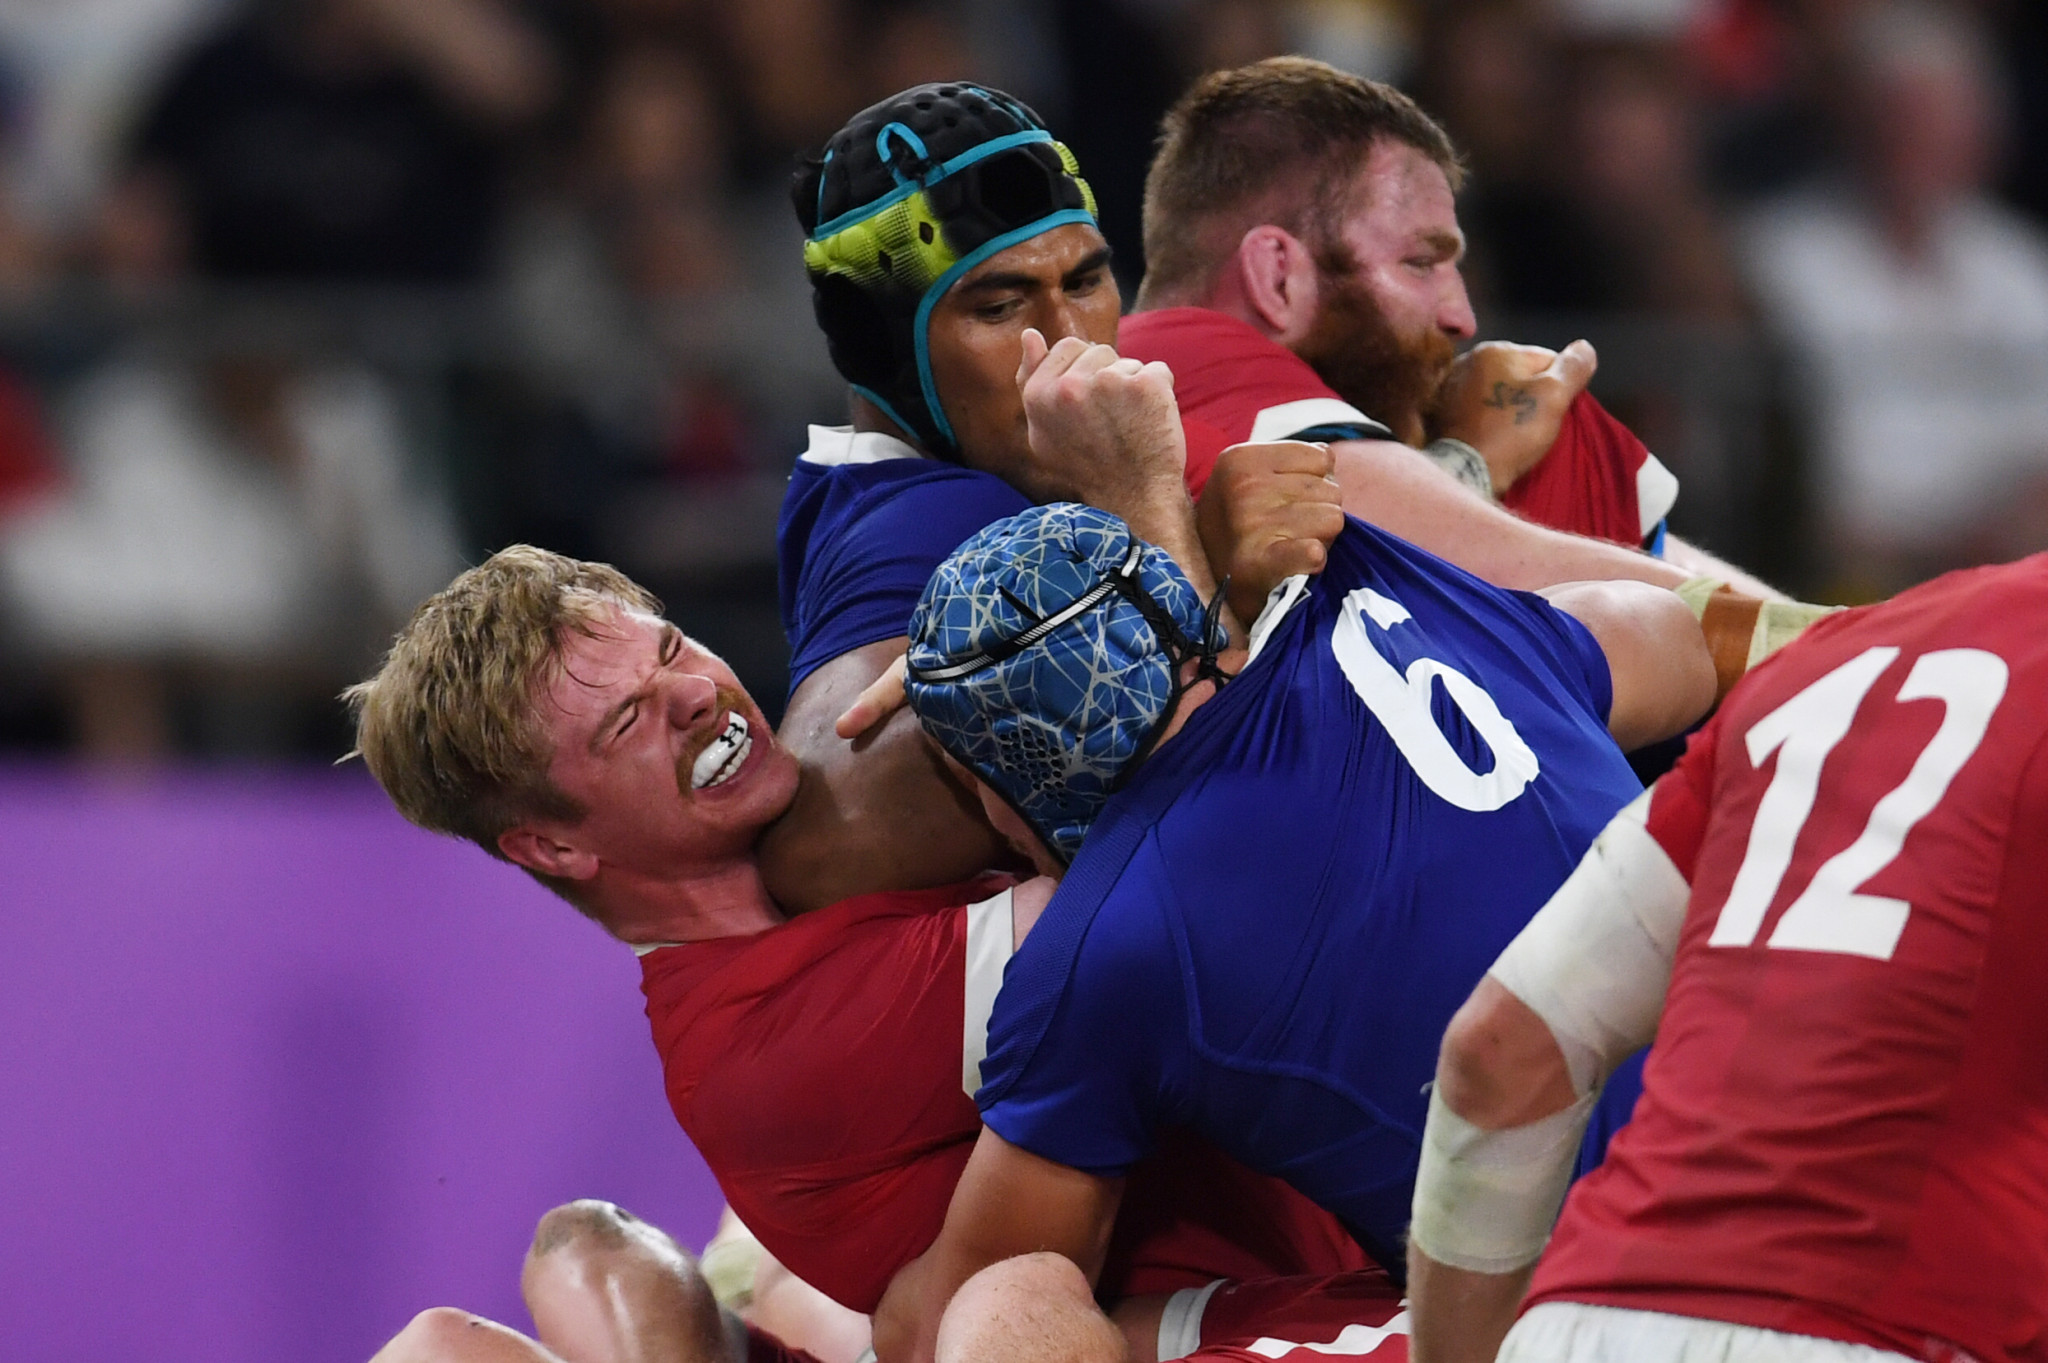 Sebastien Vahaamahina of France was sent off in the second half, having elbowed Aaron Wainwright ©Getty Images